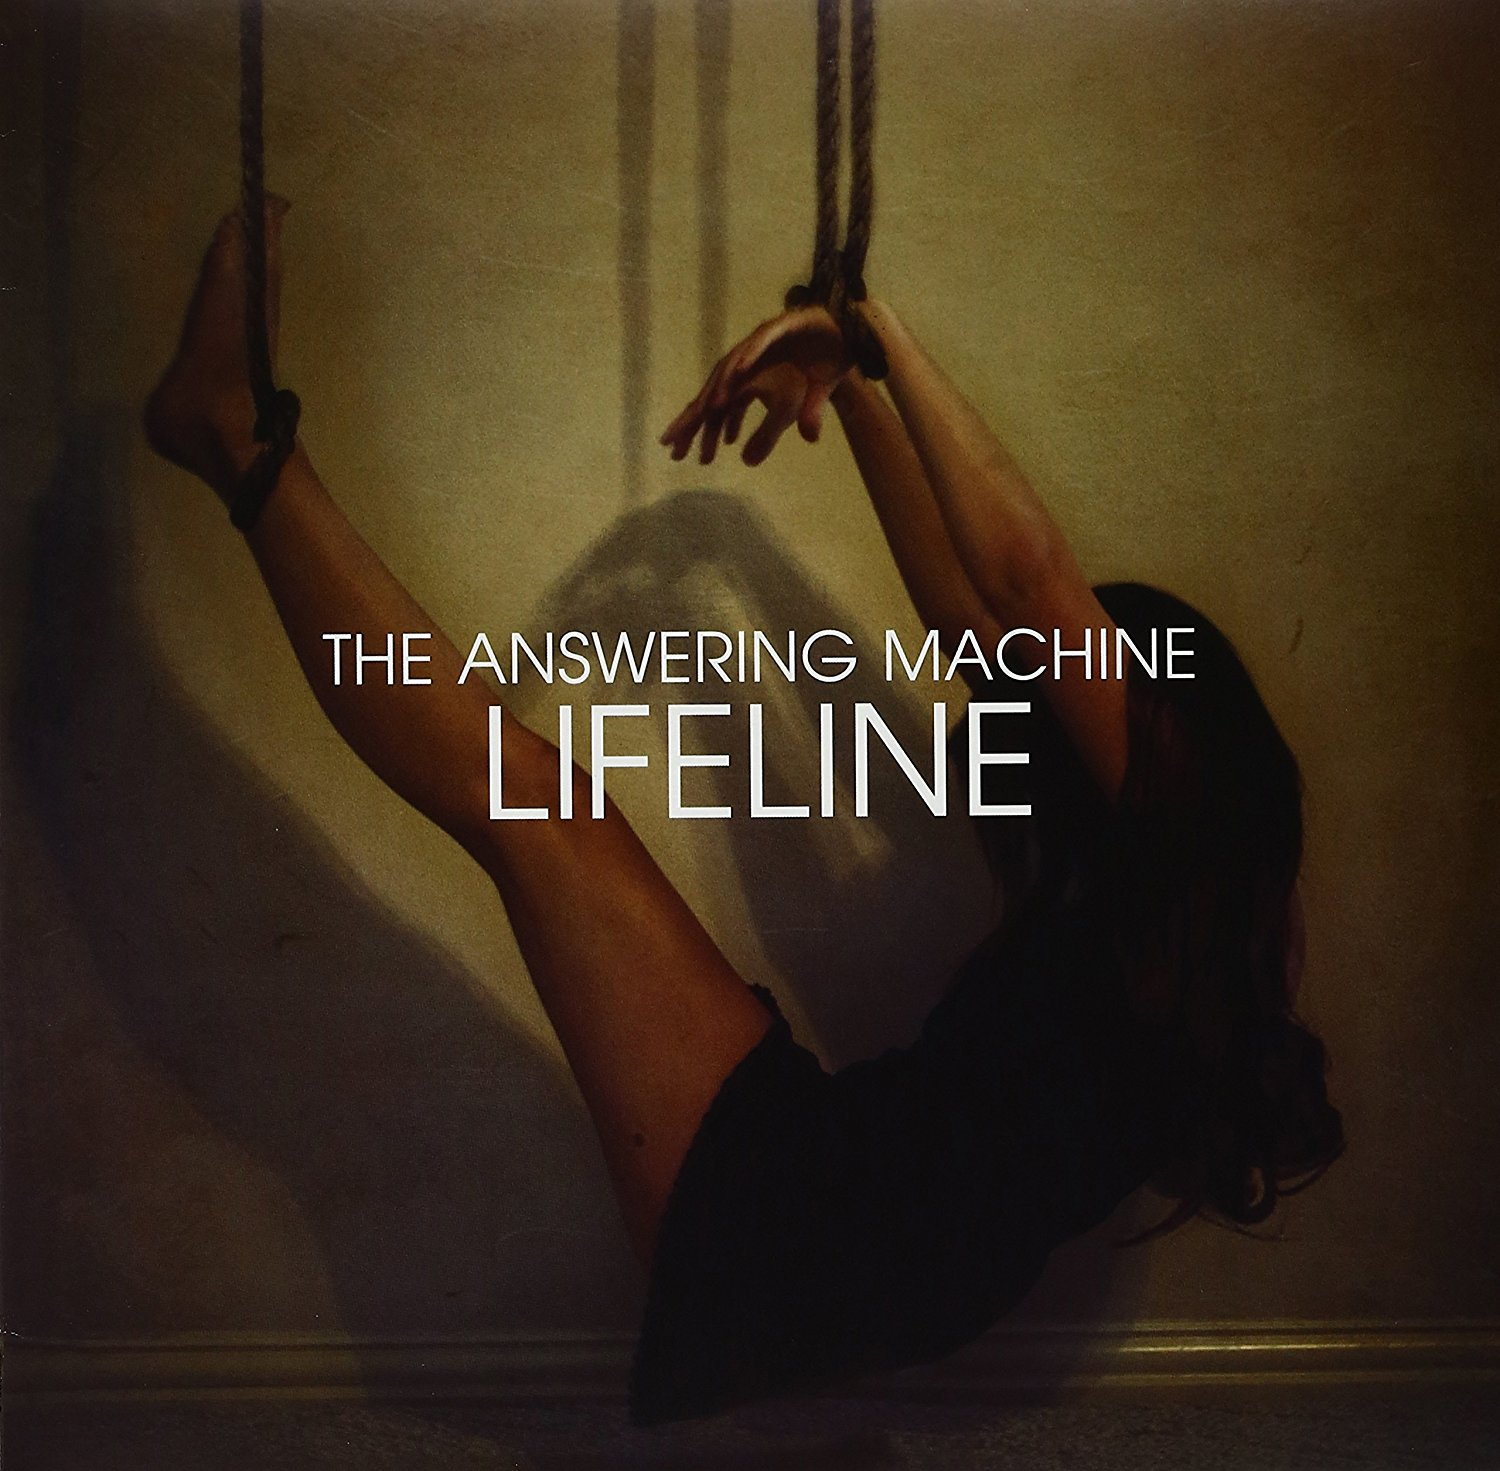 Answering Machine (The) Lifeline CD